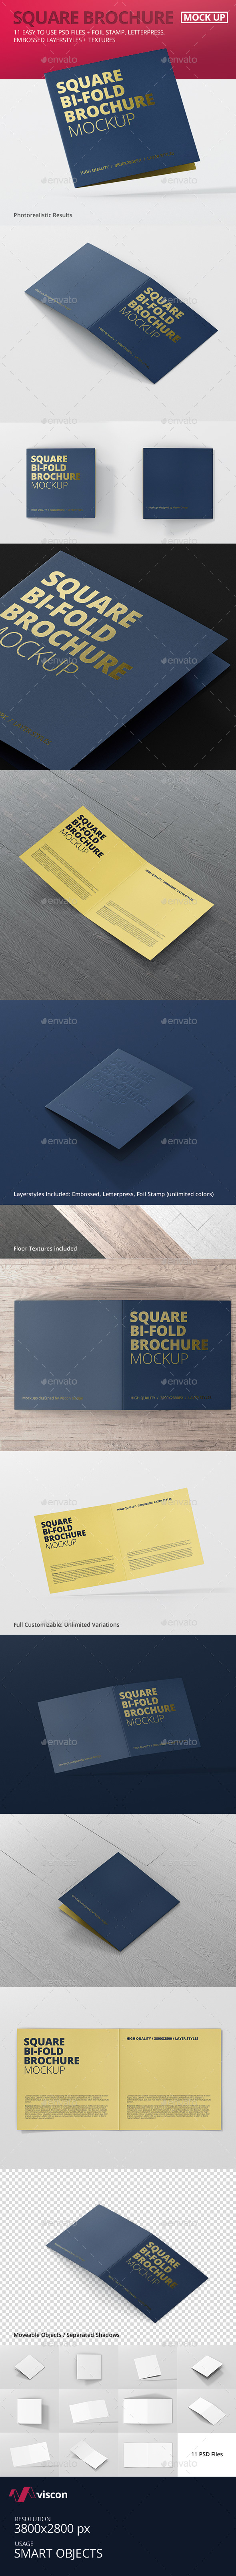 Square Bi-Fold Brochure Mock-Up - Brochures Print